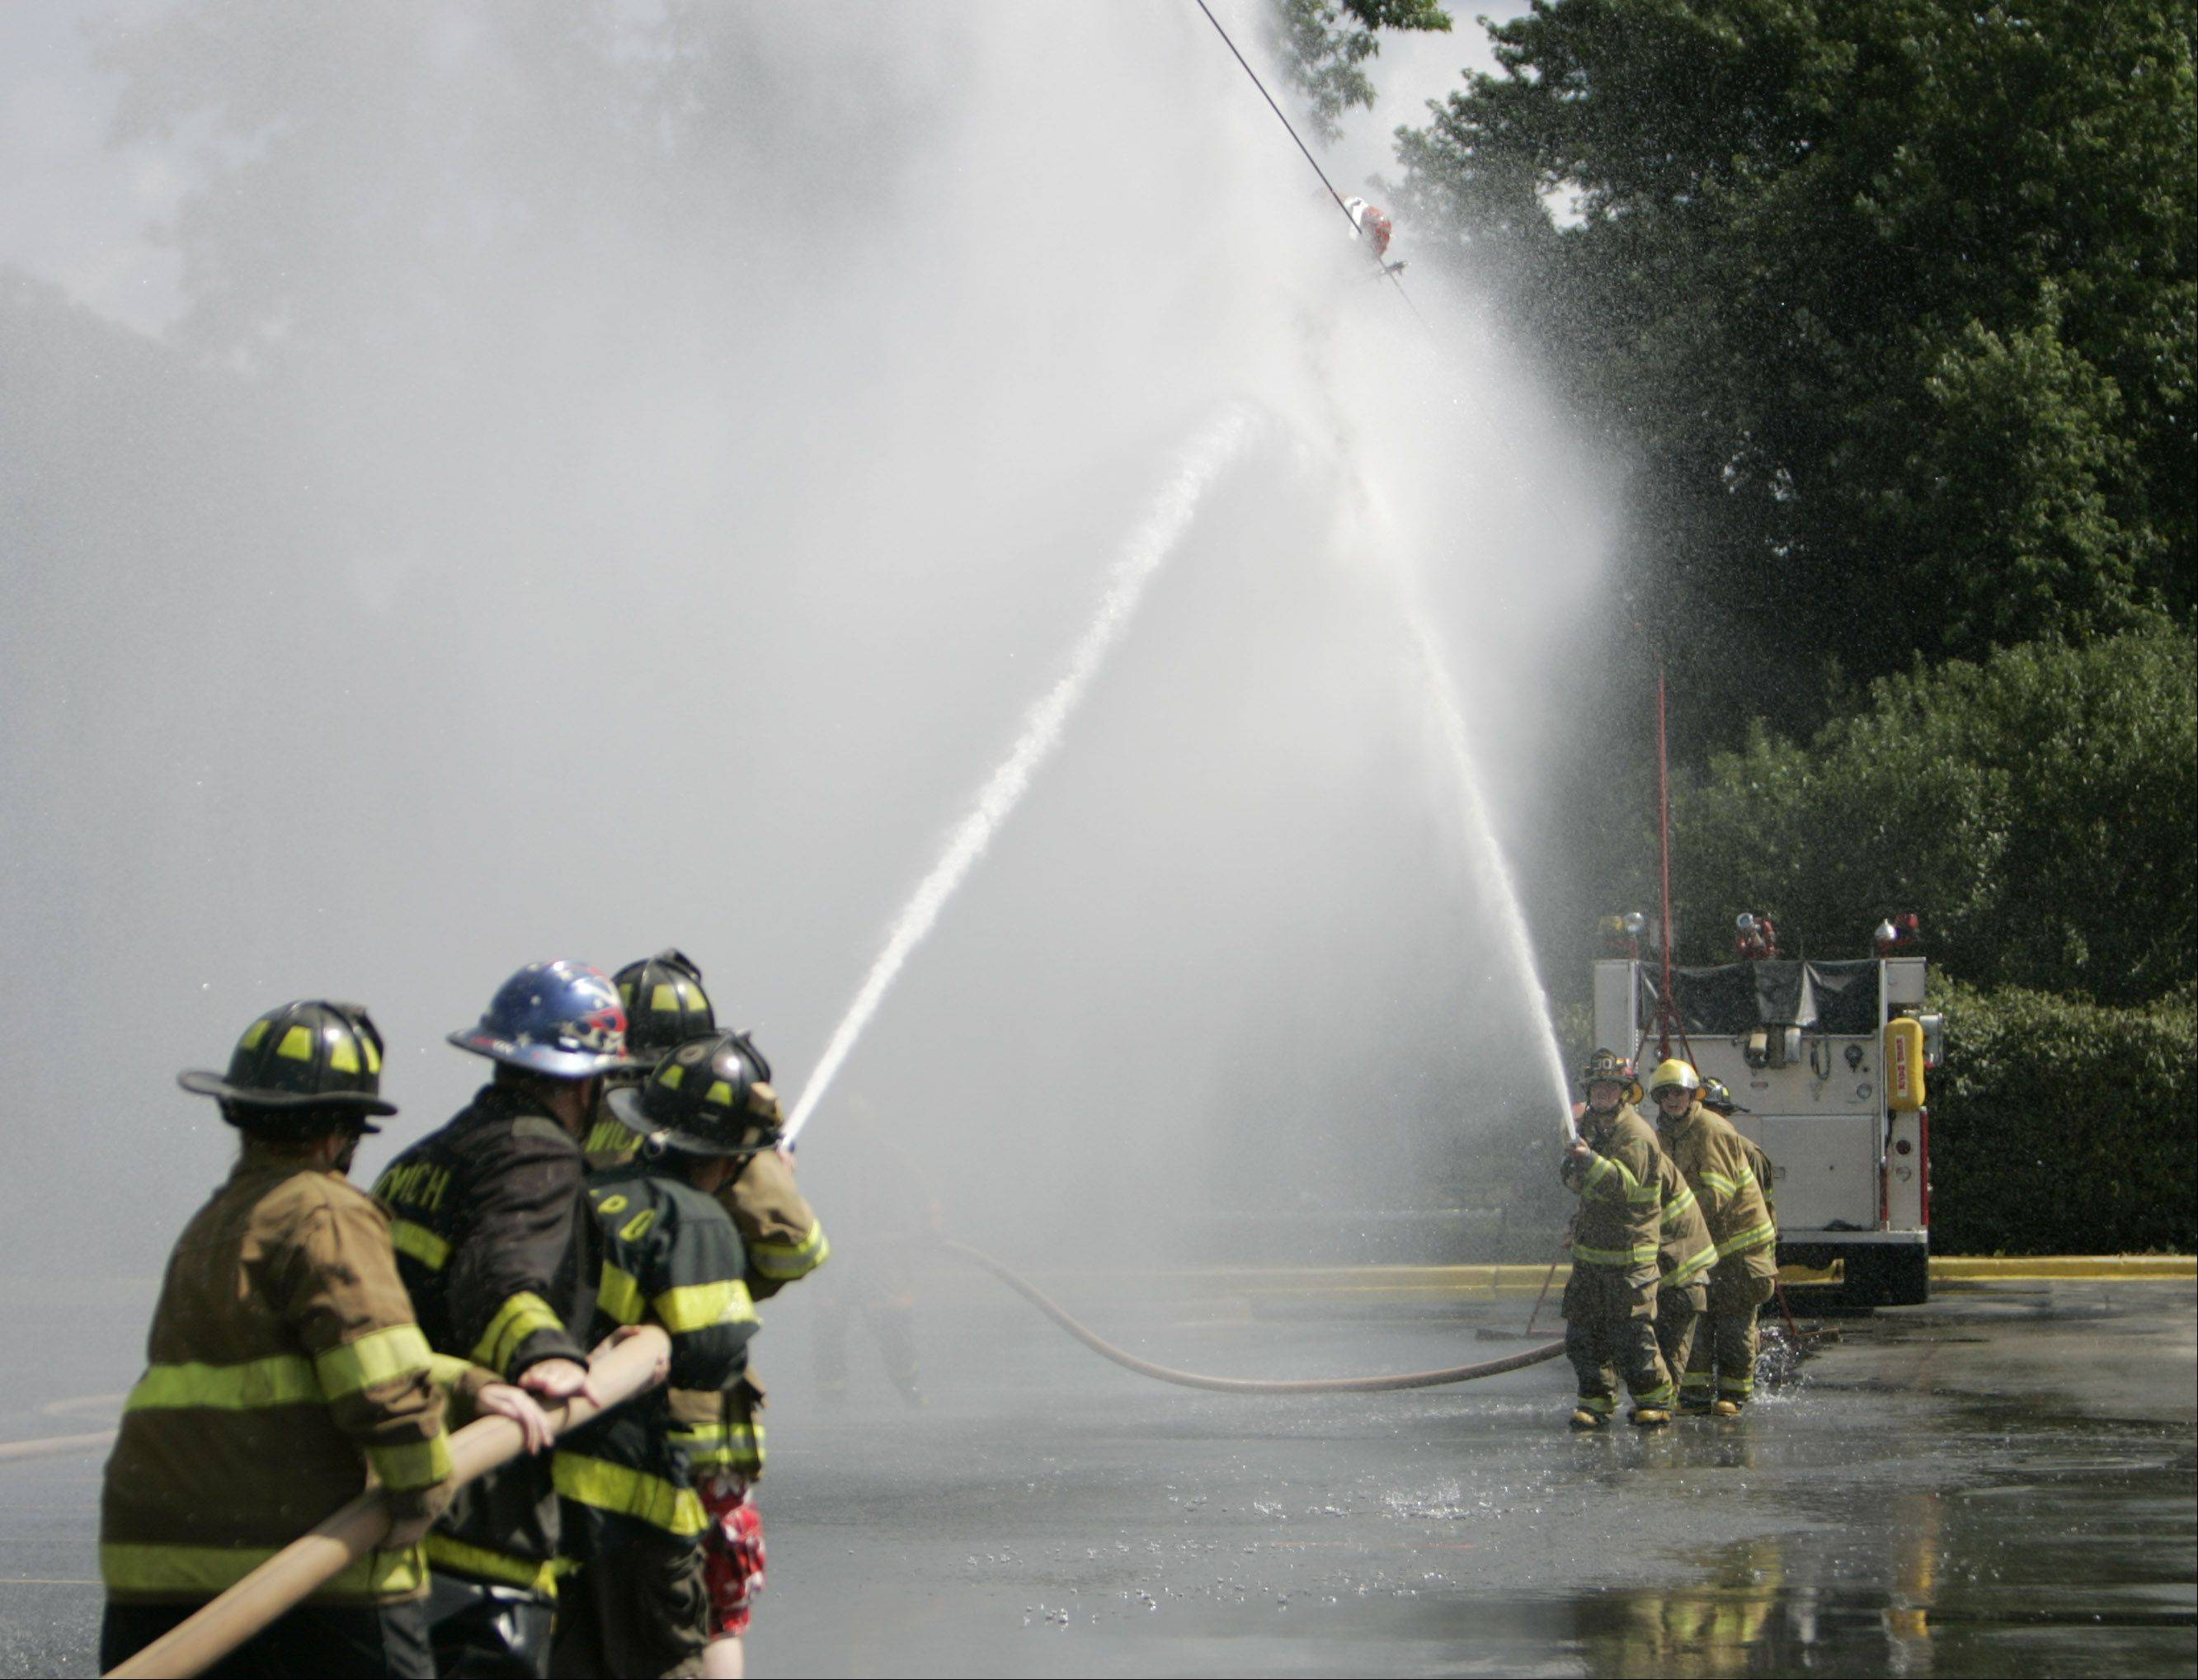 Firefighters from Sandwich, right, and Paw-Paw, left, compete in the Fire Fighters Association water fights during Sugar Grove's Corn Boil festival.